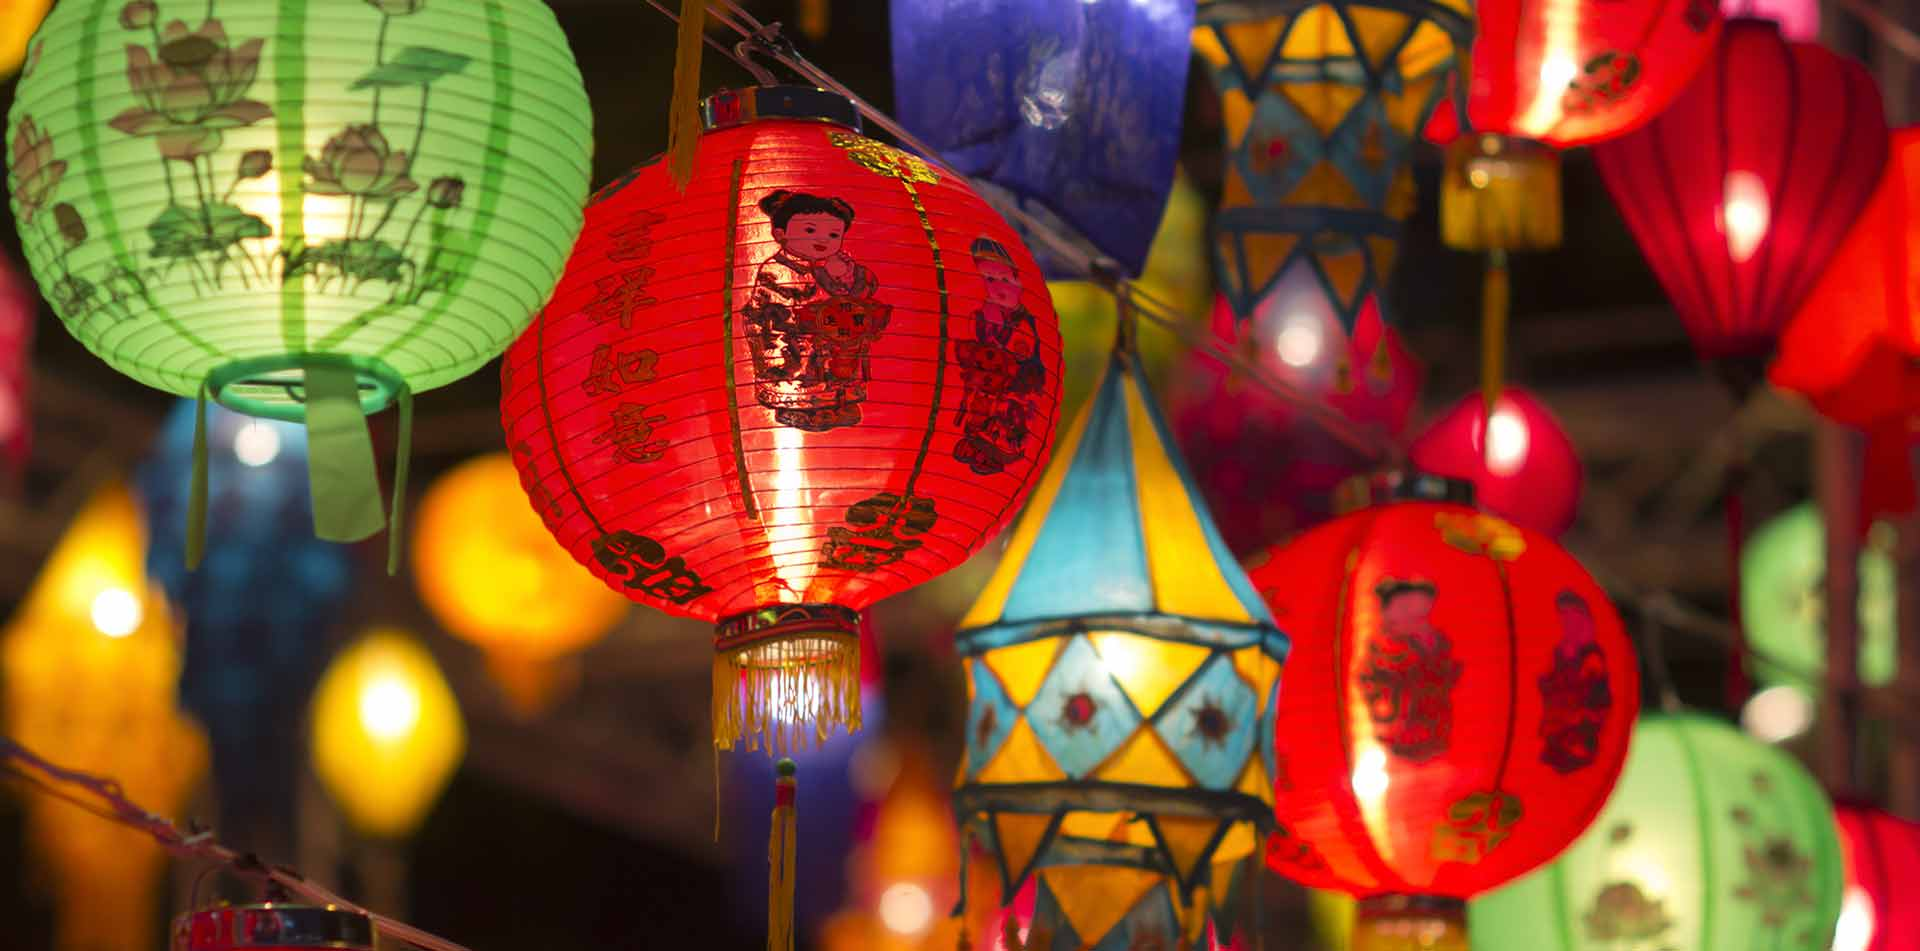 Asia China traditional Chinese lanterns for mid-autumn harvest festival - luxury vacation destinations